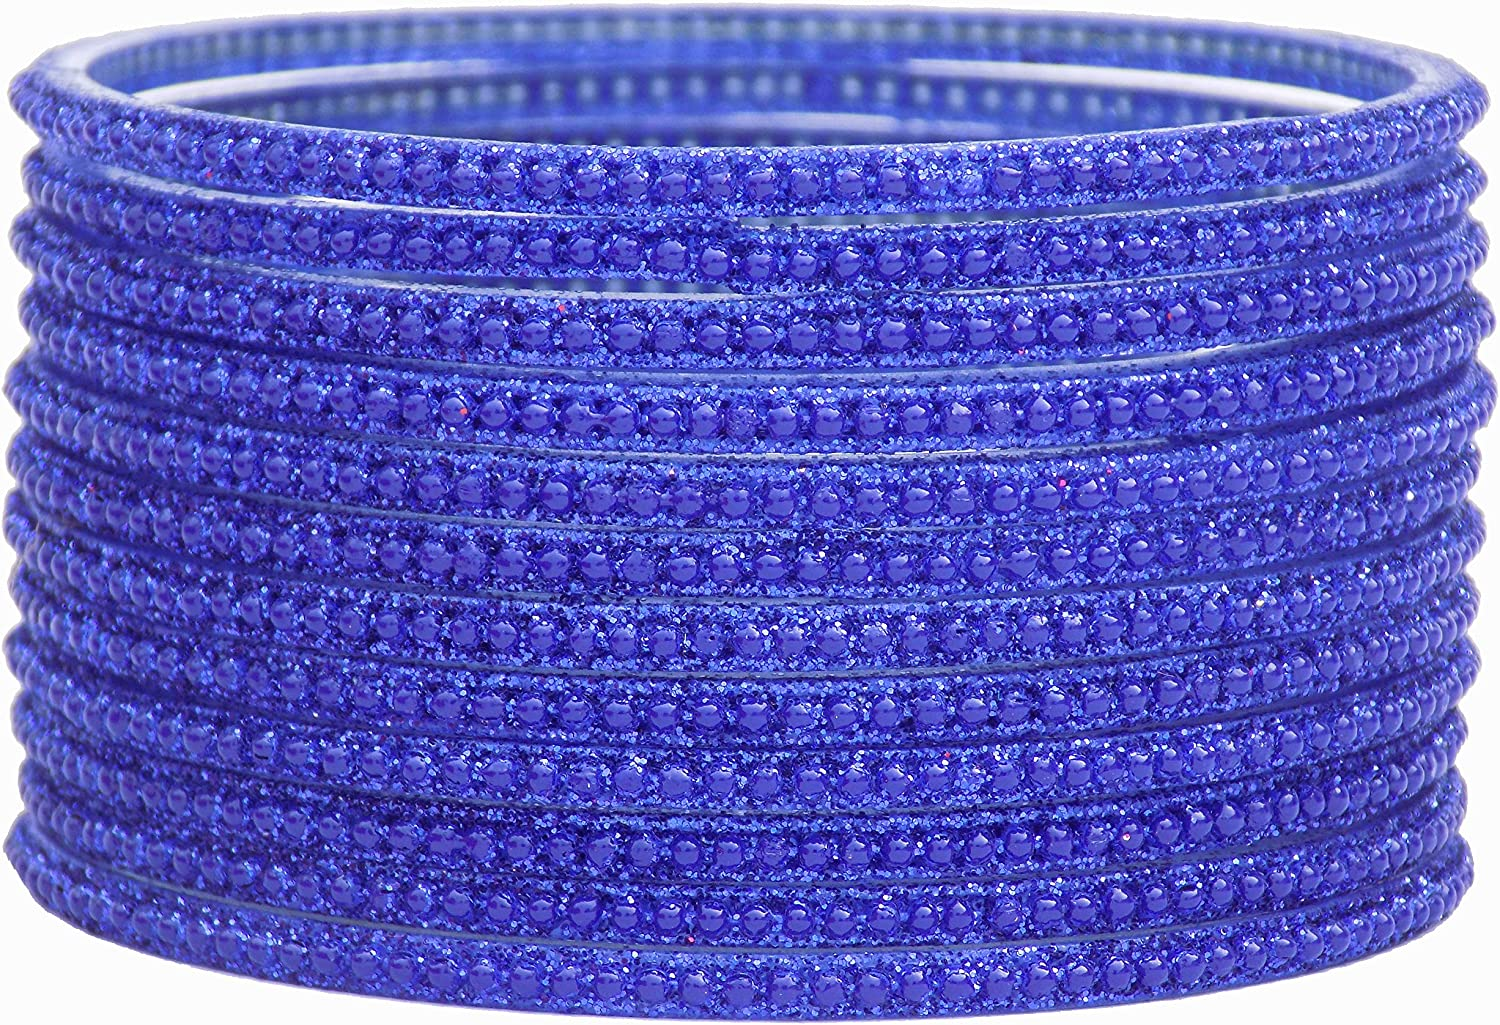 JD'Z COLLECTION Indian Glass Bangles Set Bollywood Costume Matching Glass Bangles Set for Womens & Girls Ethnic Bangles Jewelry,for Wedding Partywear,Bridal Bangles Set of 12 Blue